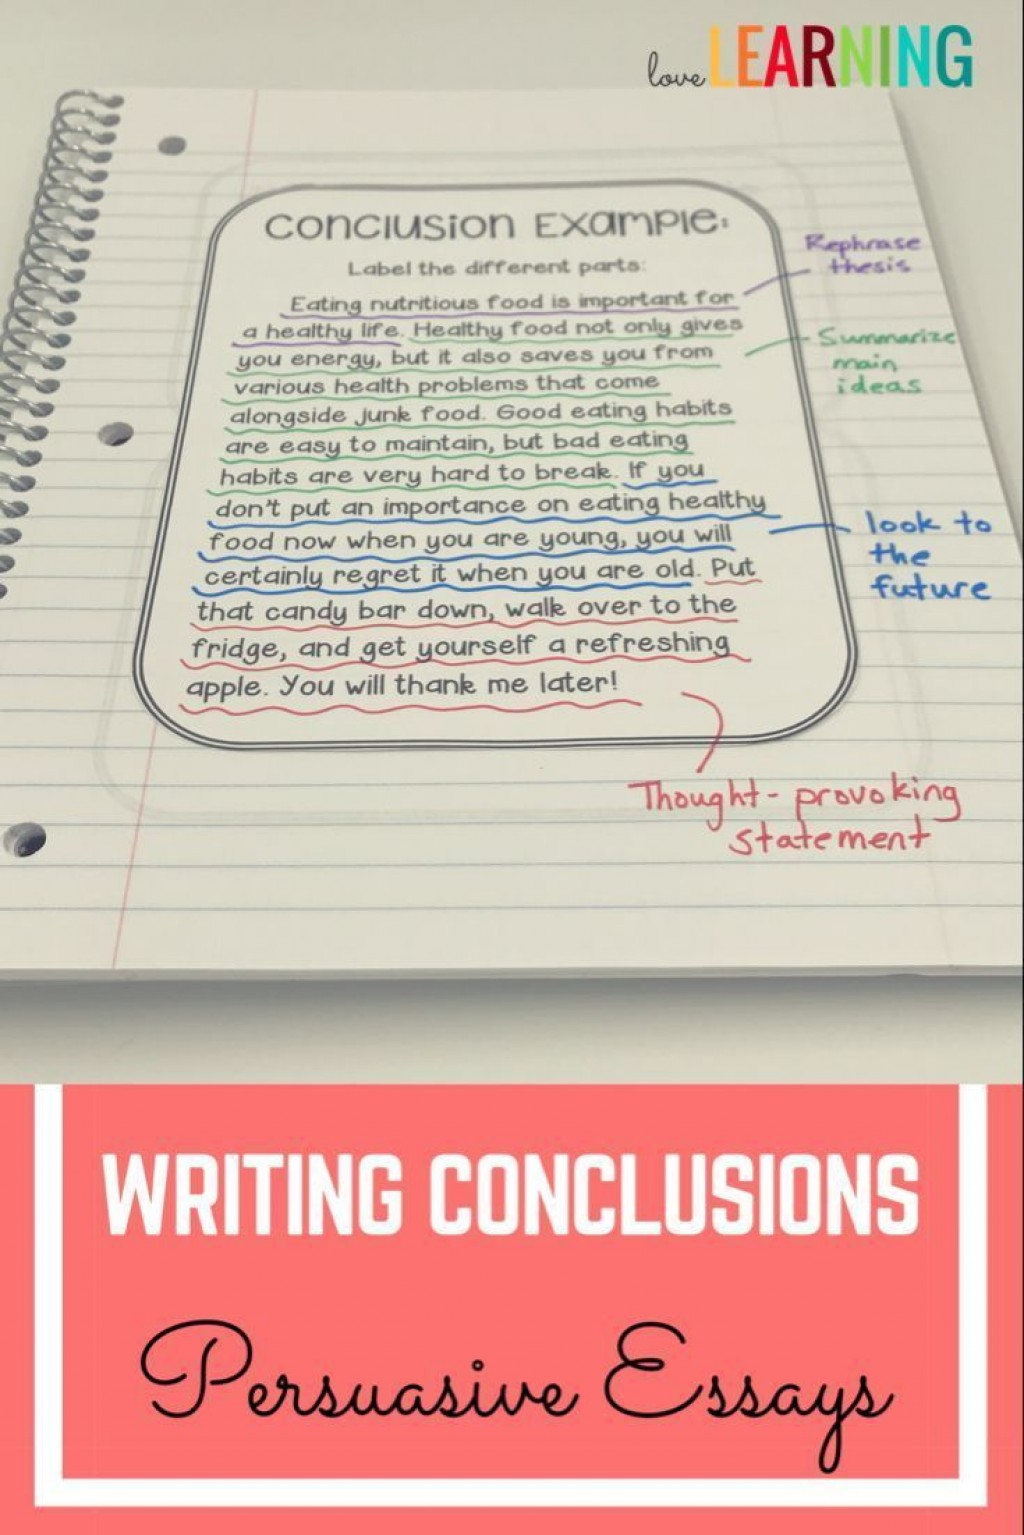 012 Conclusion To Persuasive Essay Outstanding Good A Example The Strongest Large